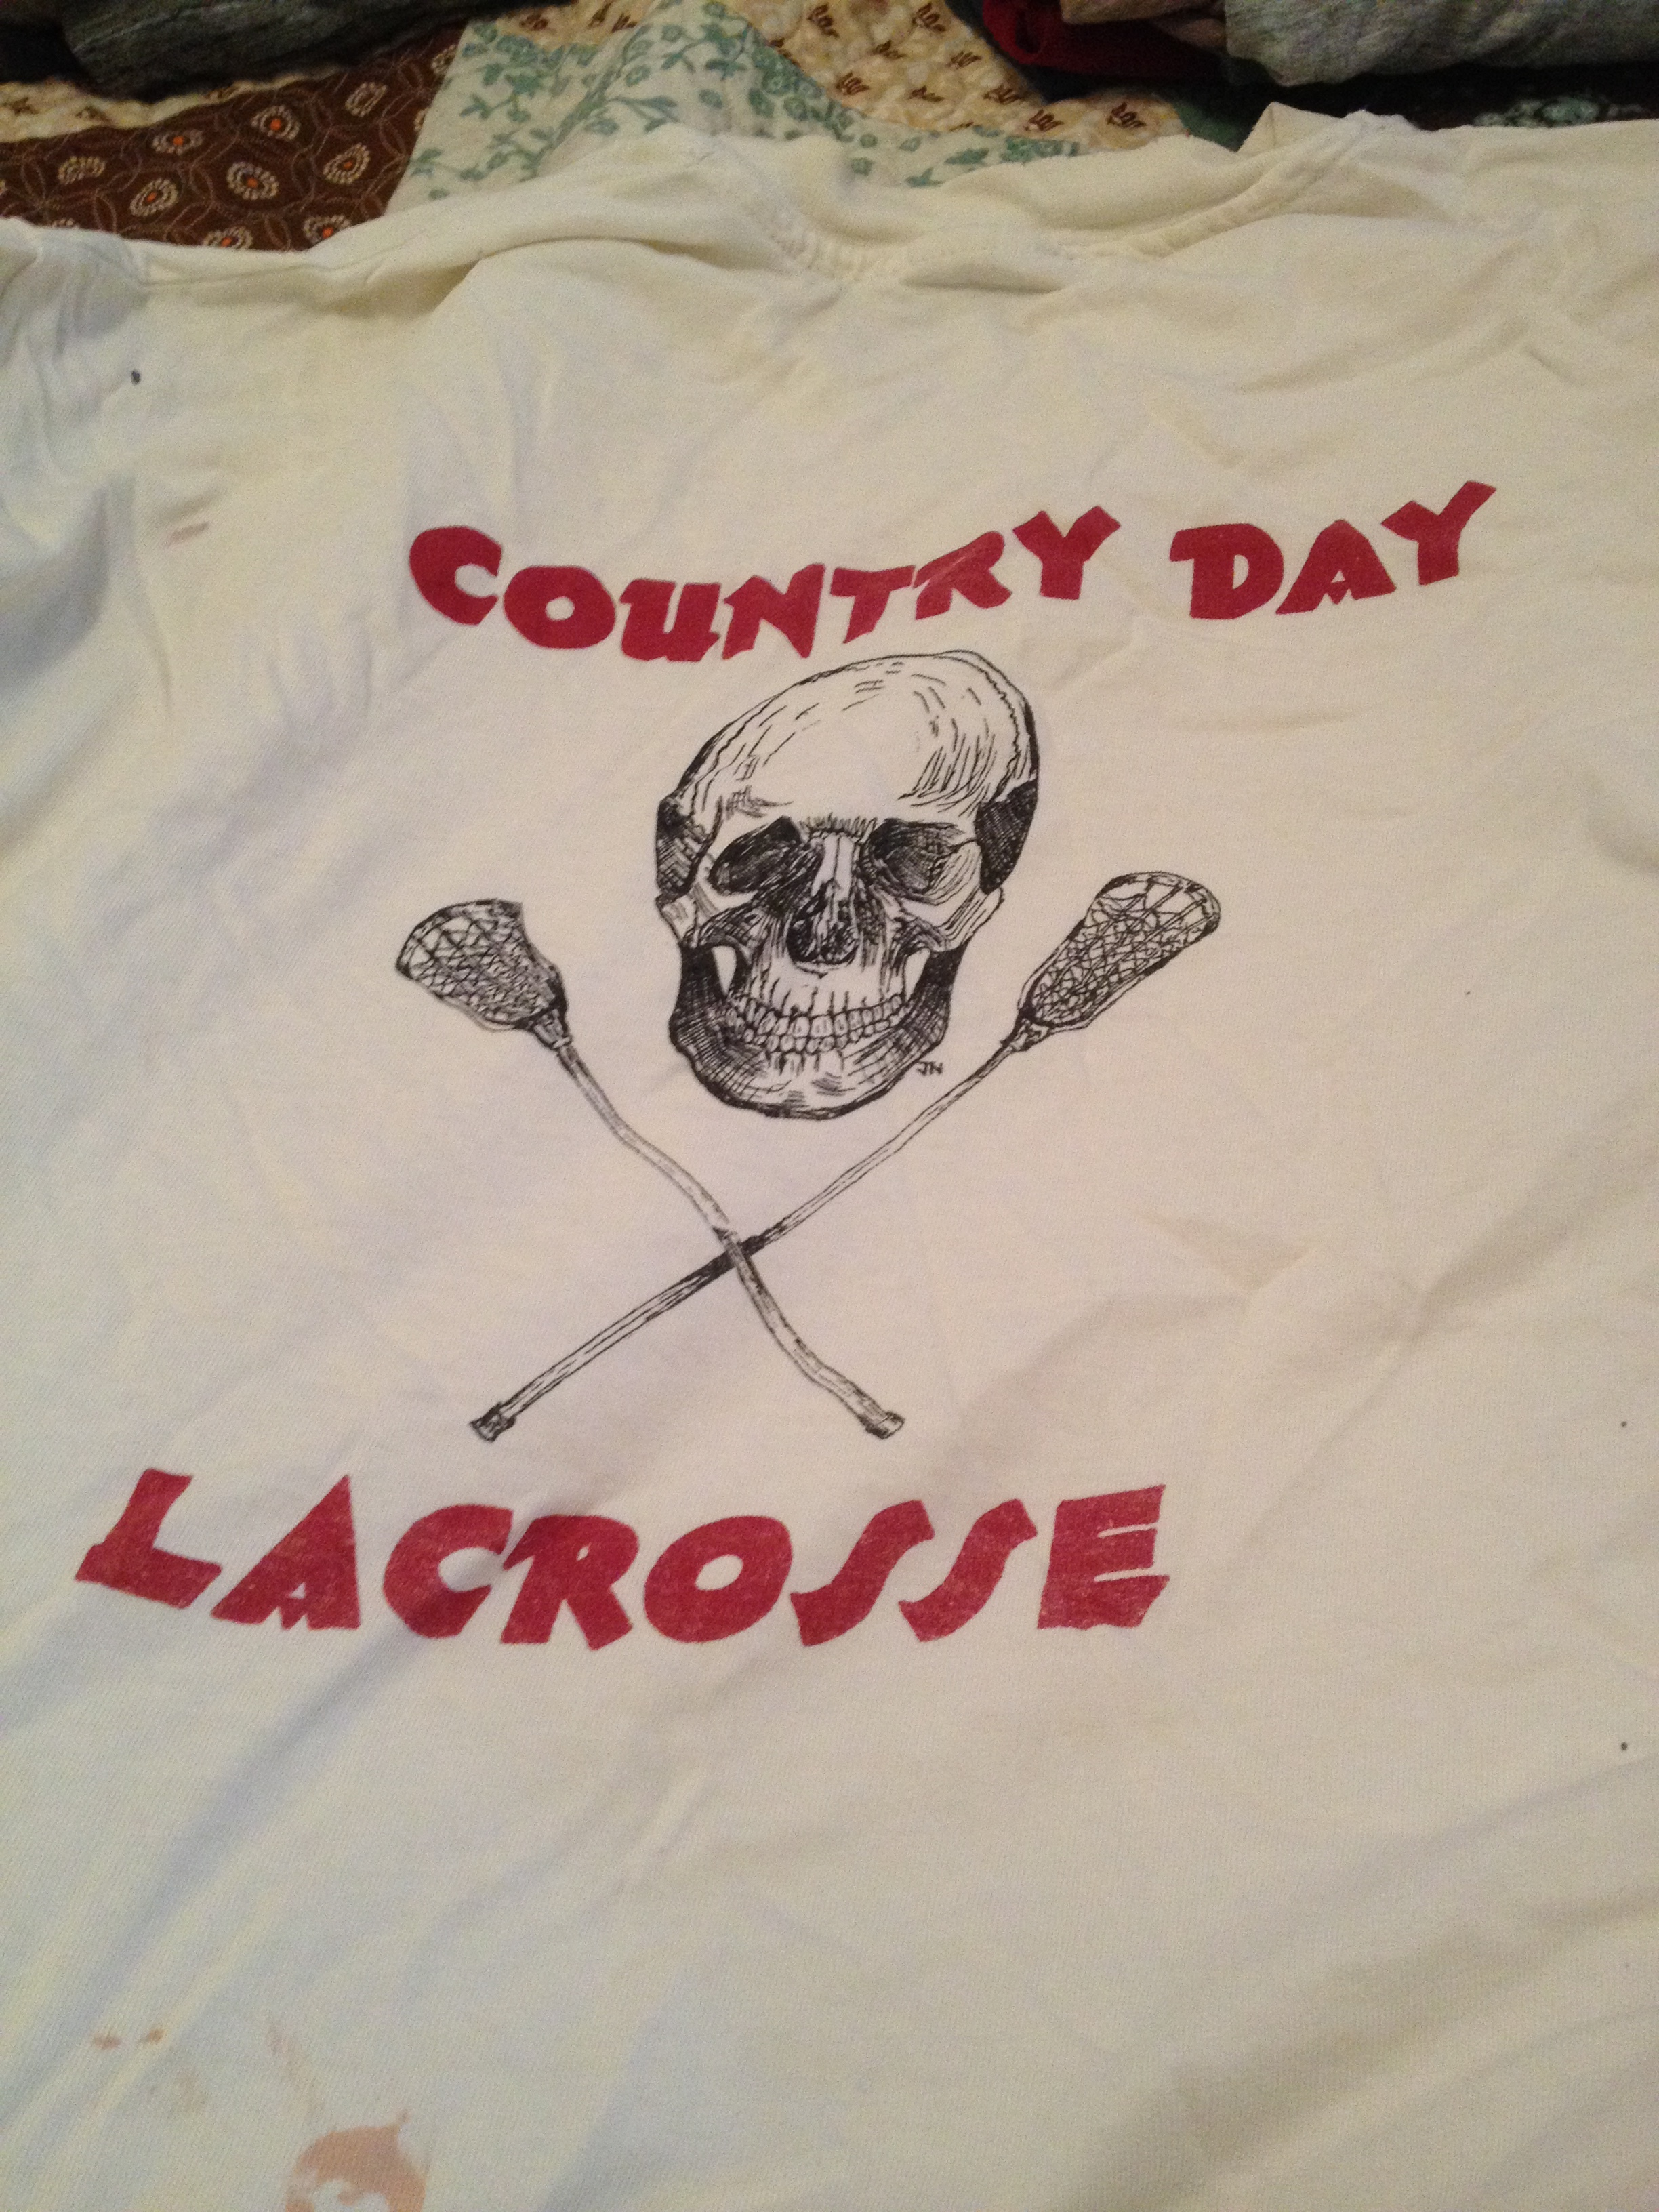 In my spring cleaning, wardrobe edition I cannot bring myself to get rid of this OLD t-shirt for the boys' HS lacrosse team (I let go of our girls' team shirt many, many years ago, as is appropriate).